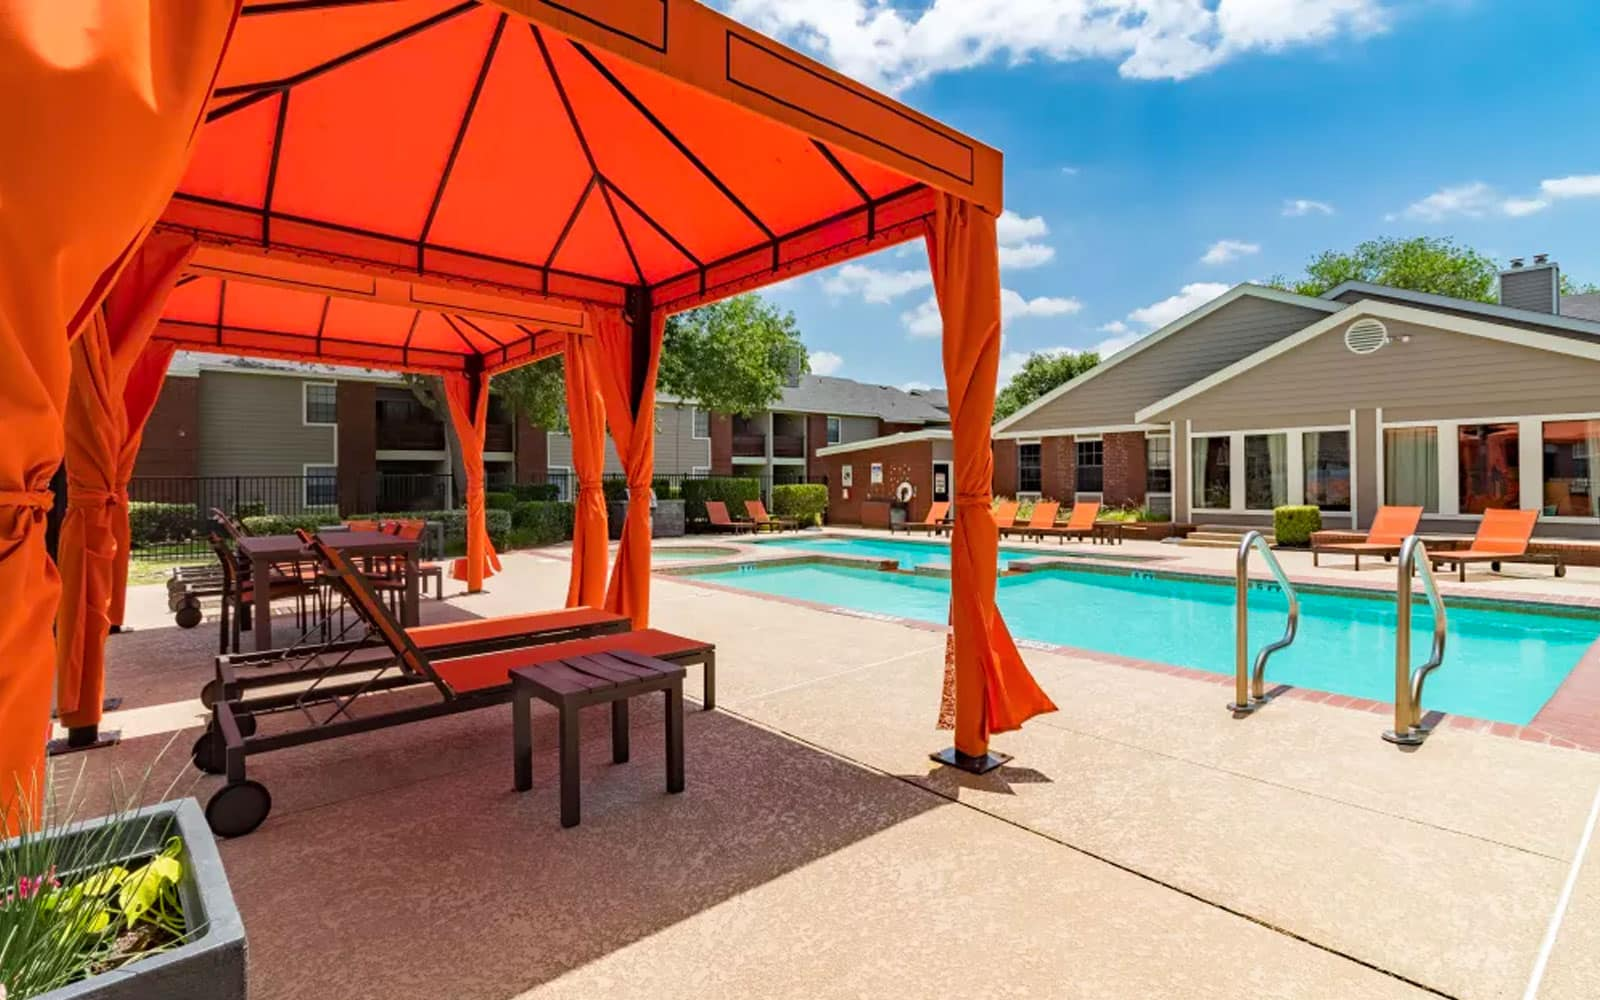 Orange gazebo with chairs in front of pool at multifamily complex